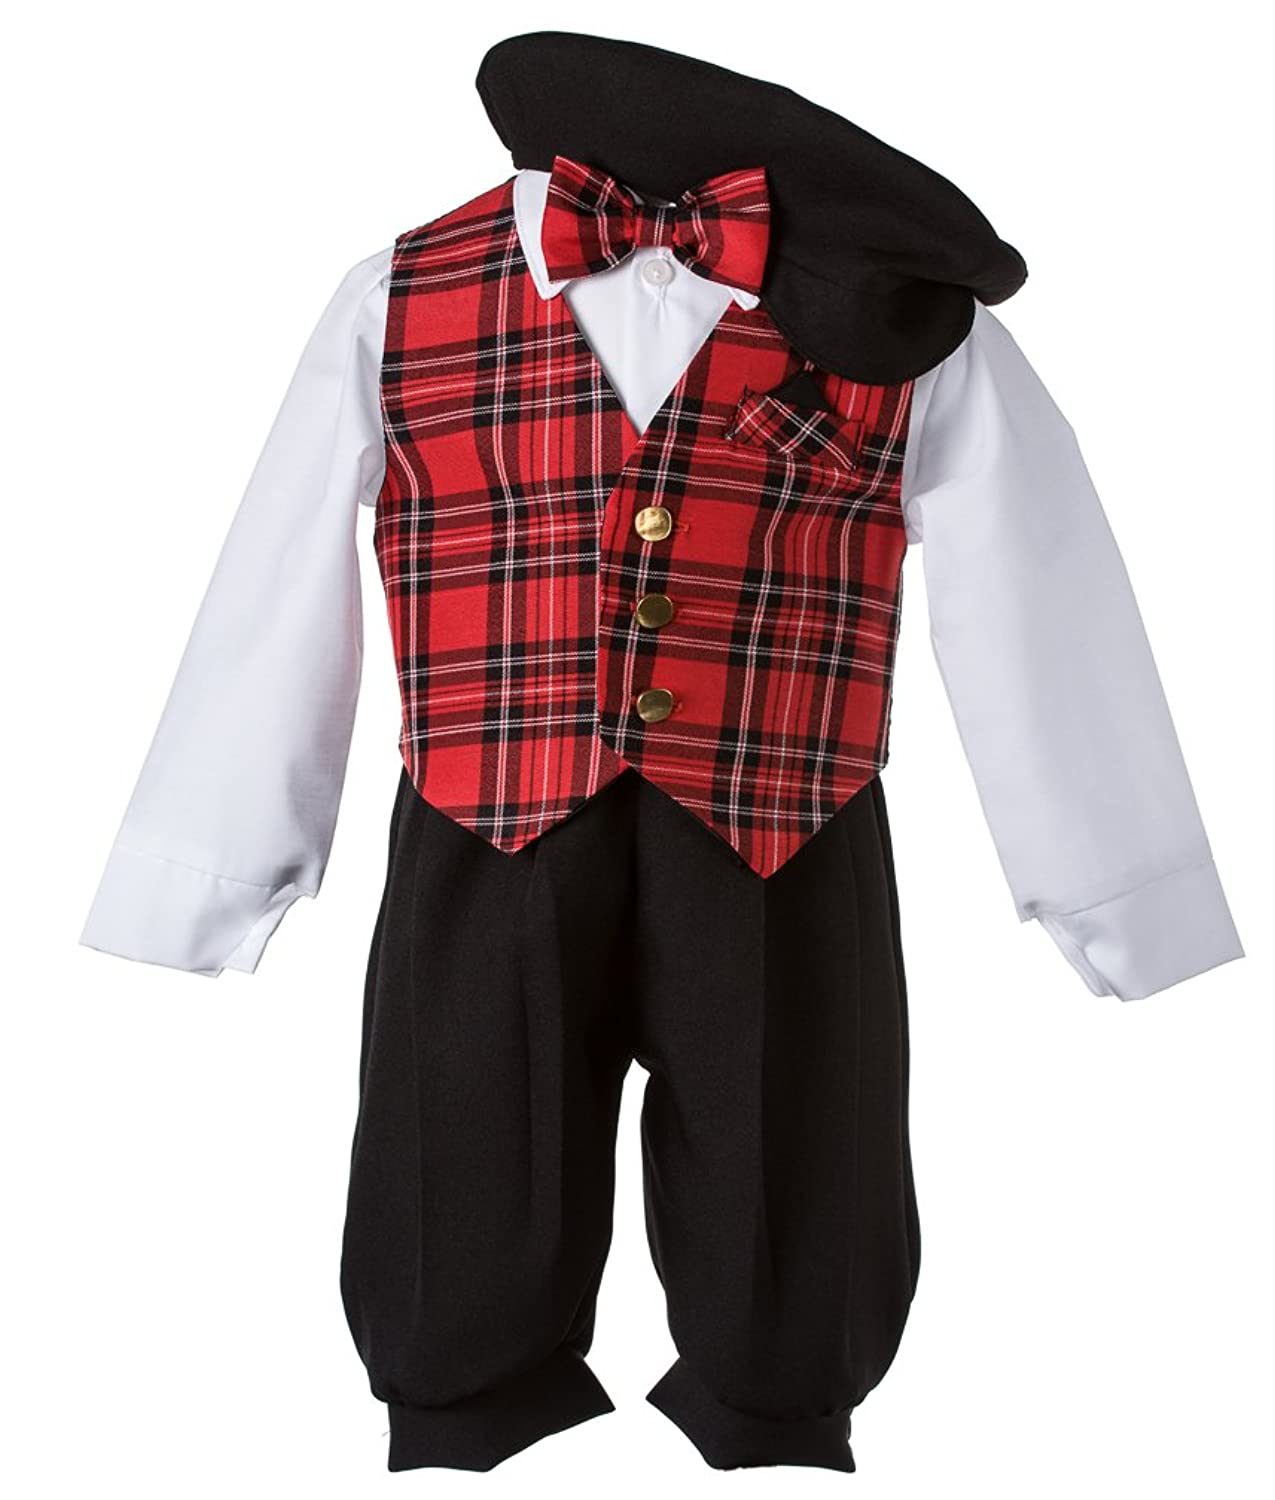 1940s Children's Clothing: Girls, Boys, Baby, Toddler Tuxgear Baby Vintage Black Knickers Set with Holiday Red Plaid Bow Tie & Vest $23.89 AT vintagedancer.com